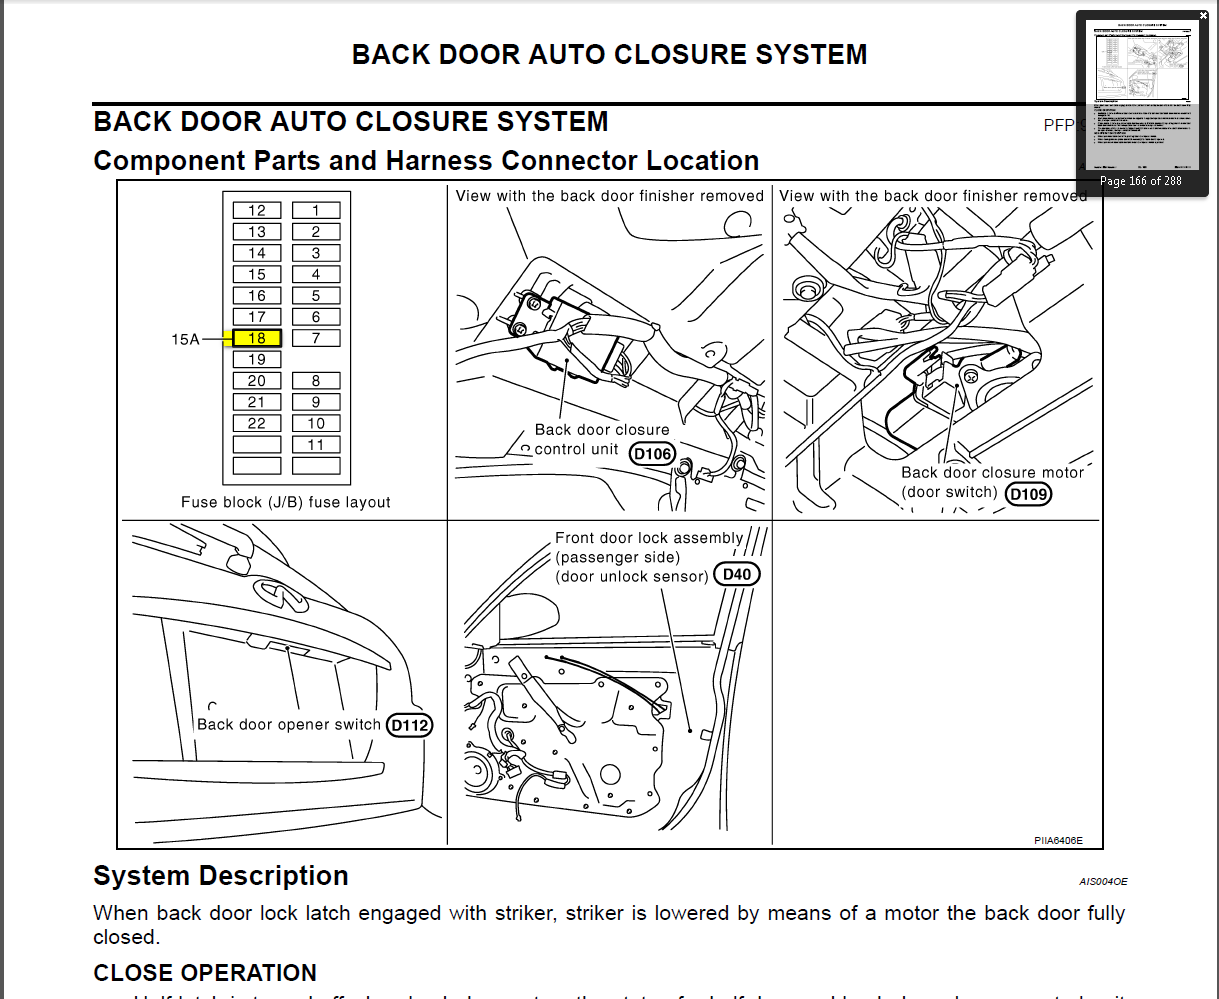 2006 Infiniti Fx35 Fuse Box Location